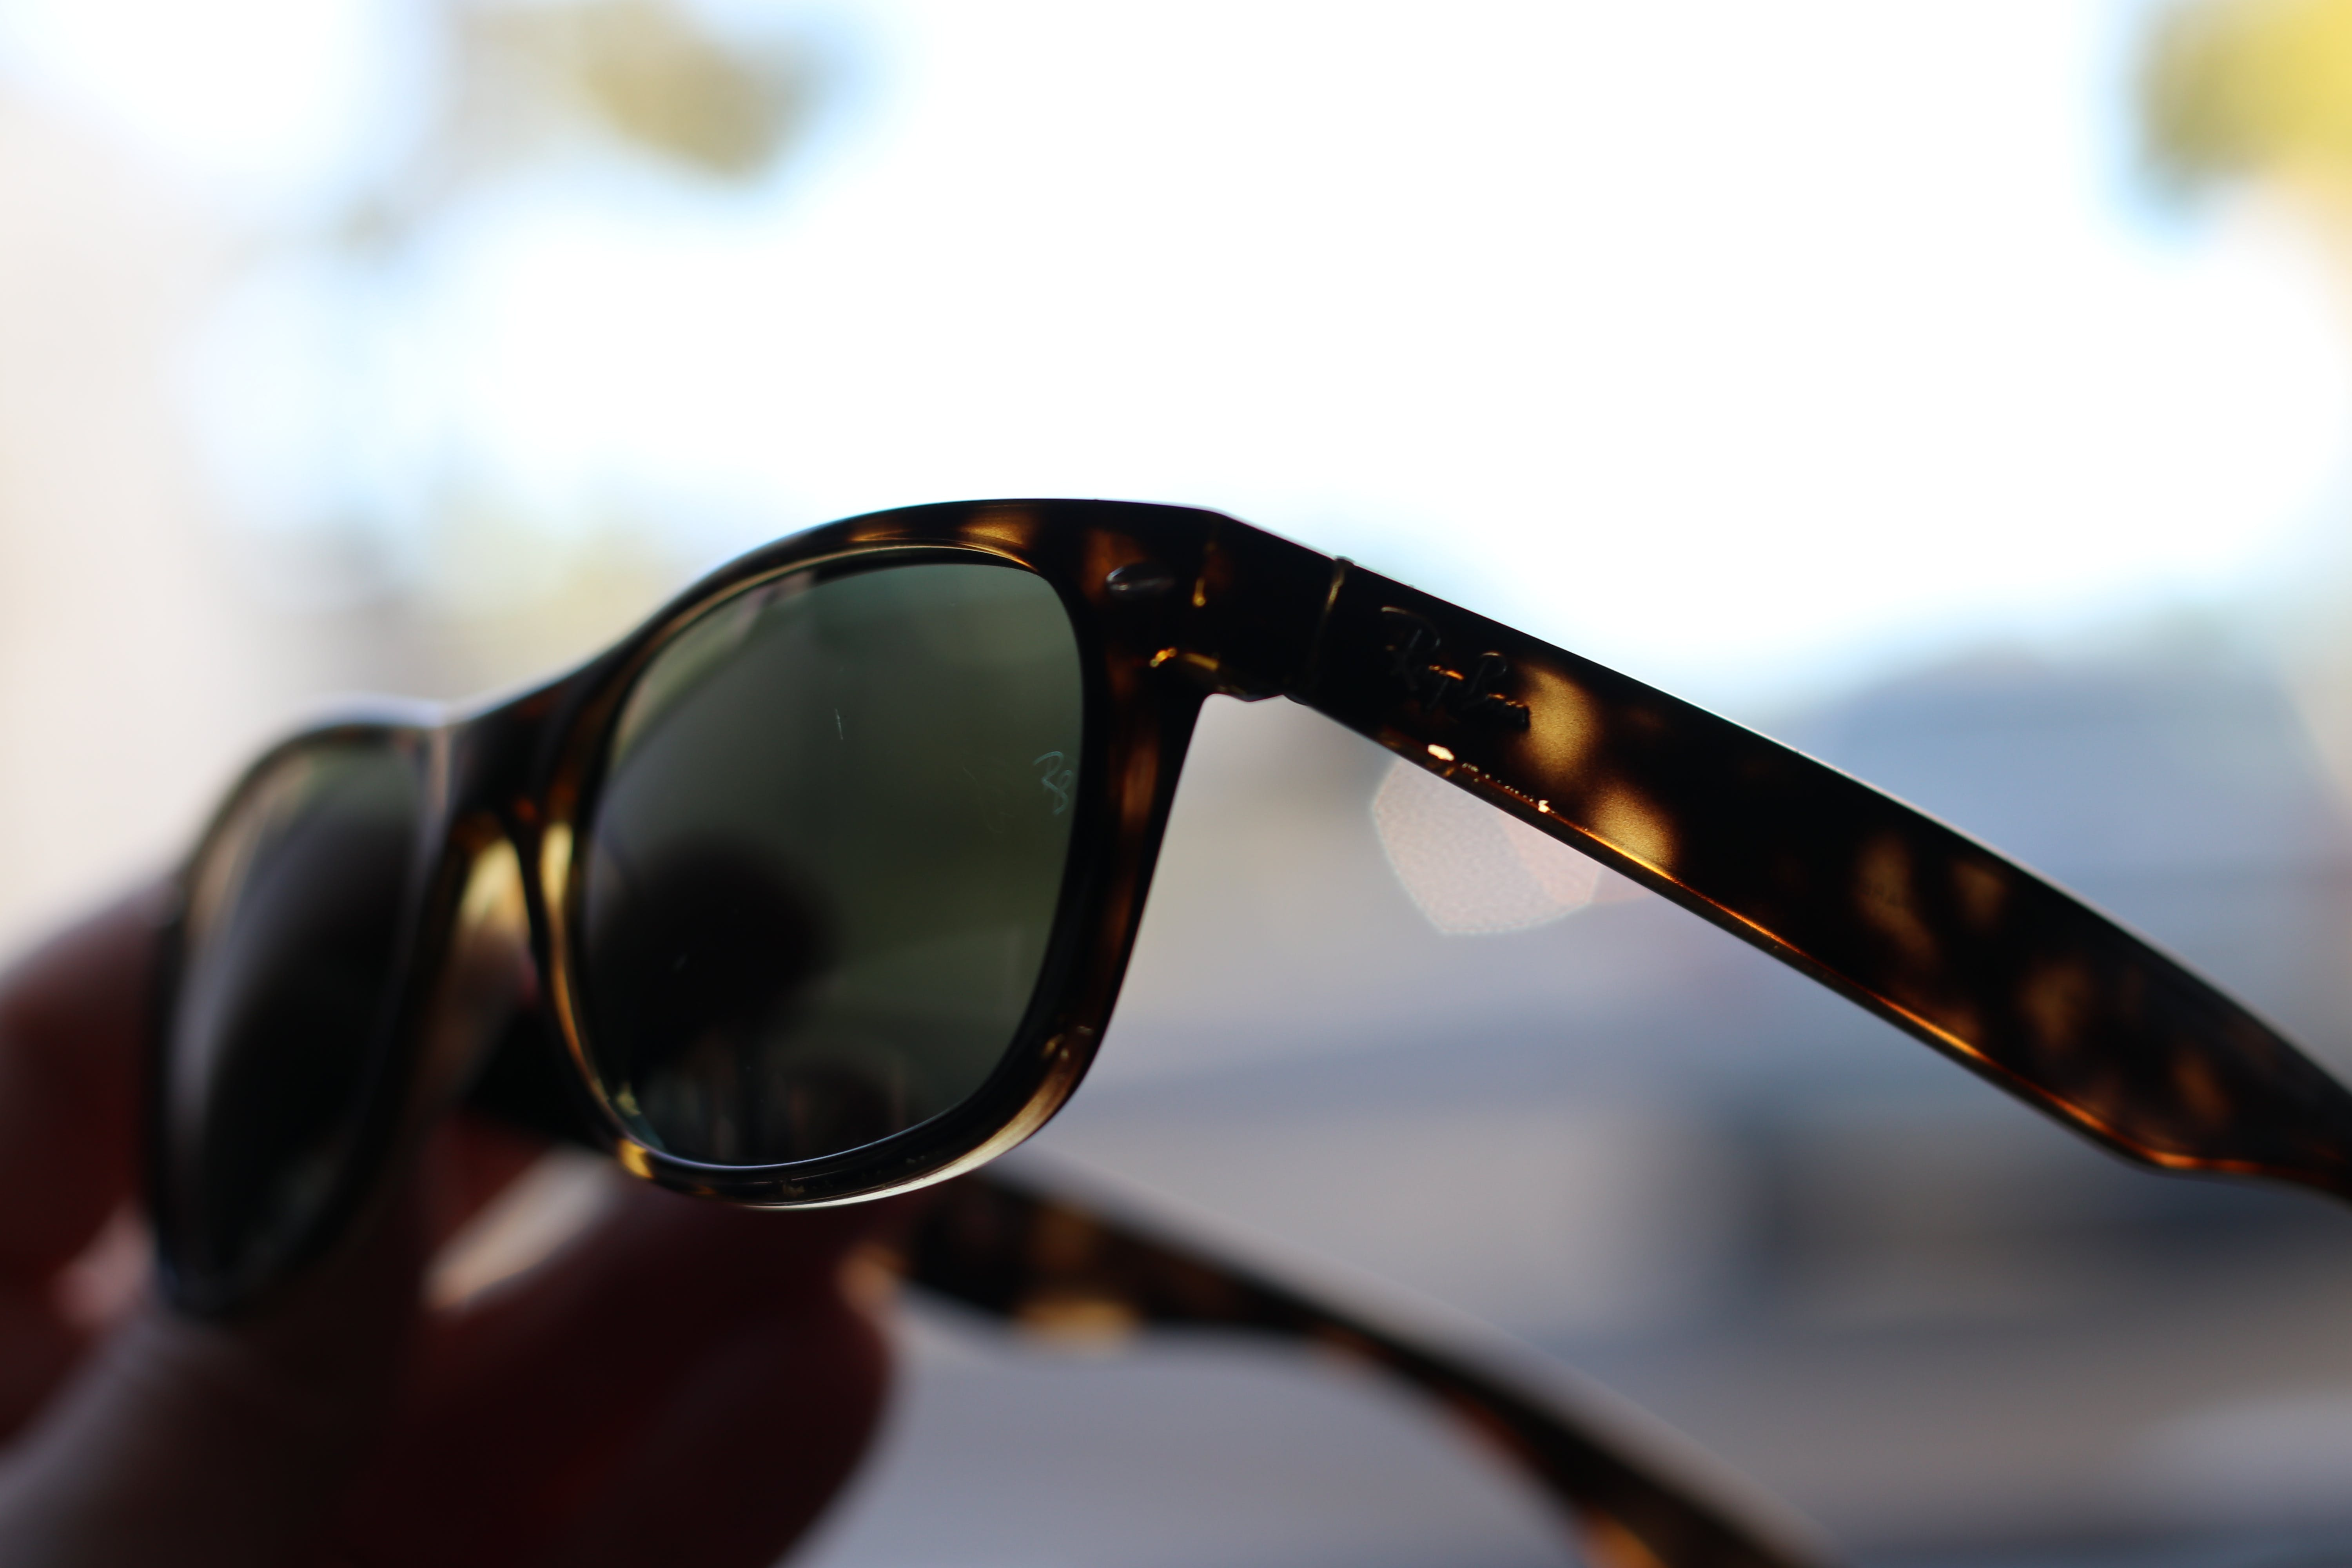 Free stock photo of sunglasses, ray ban